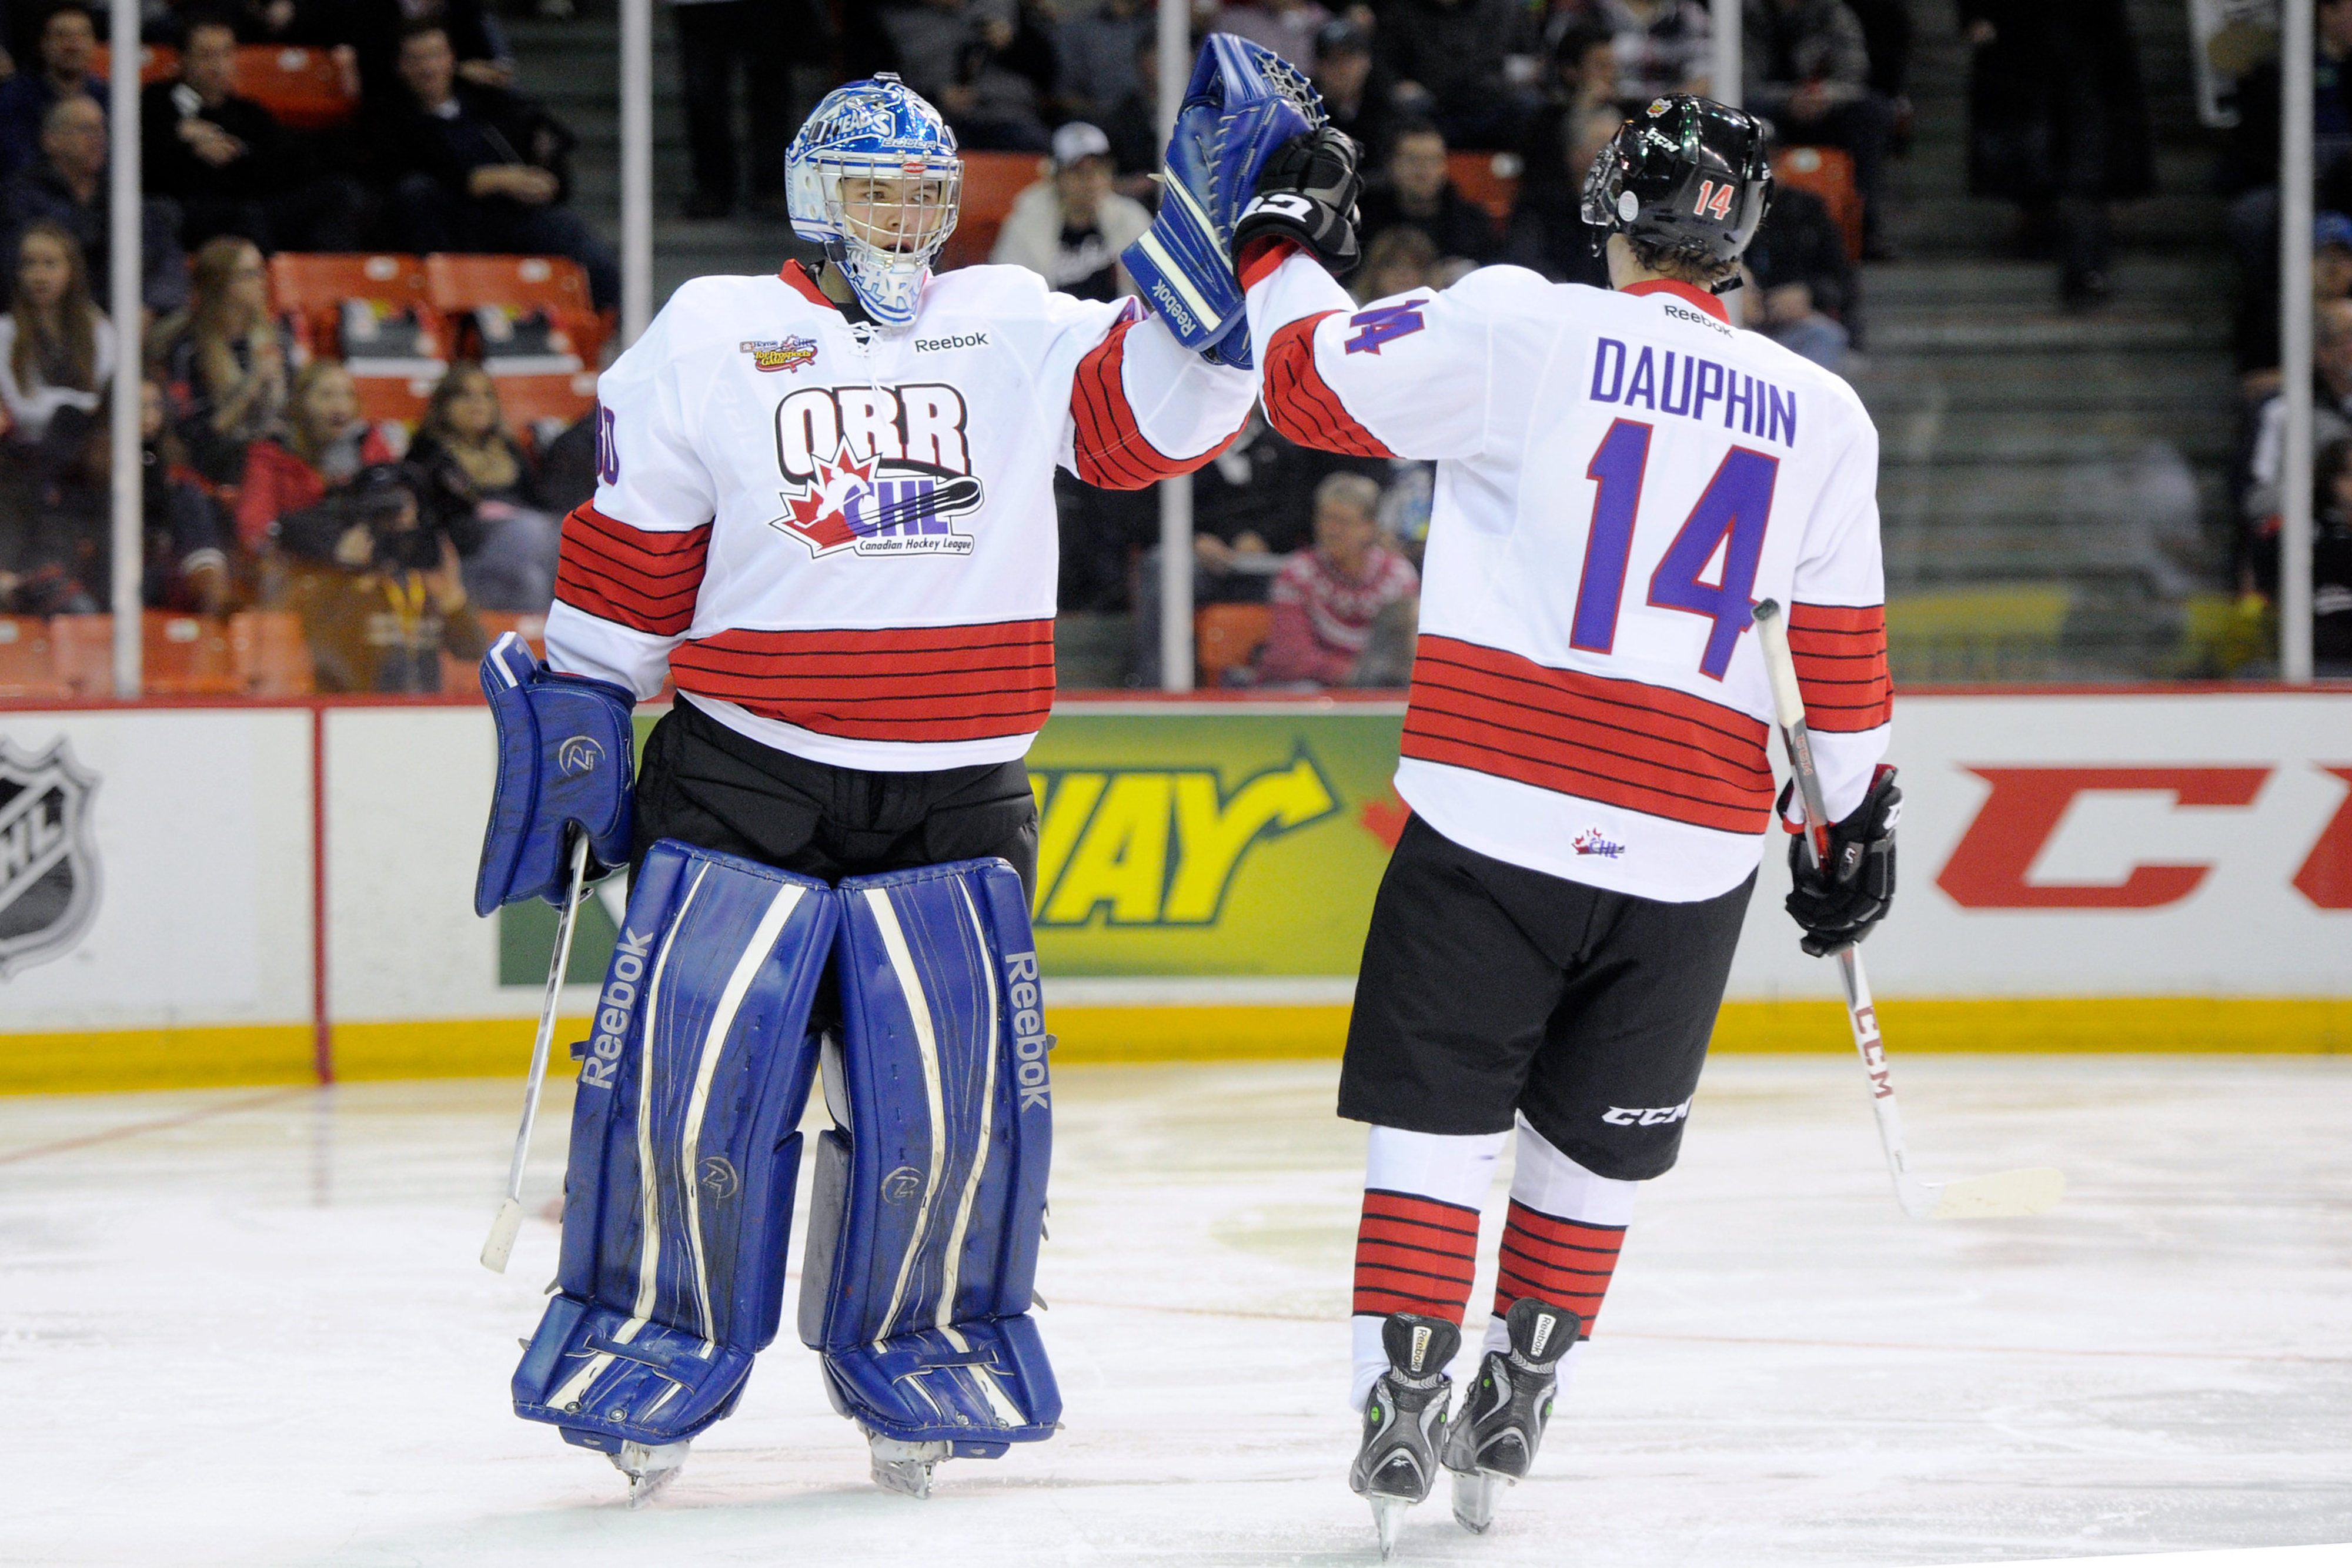 Confirmed: Laurent Dauphin can give a goalie a high-five on the ice.   He was Hunter Shinkaruk's replacement in this year's Top Prospect Game.